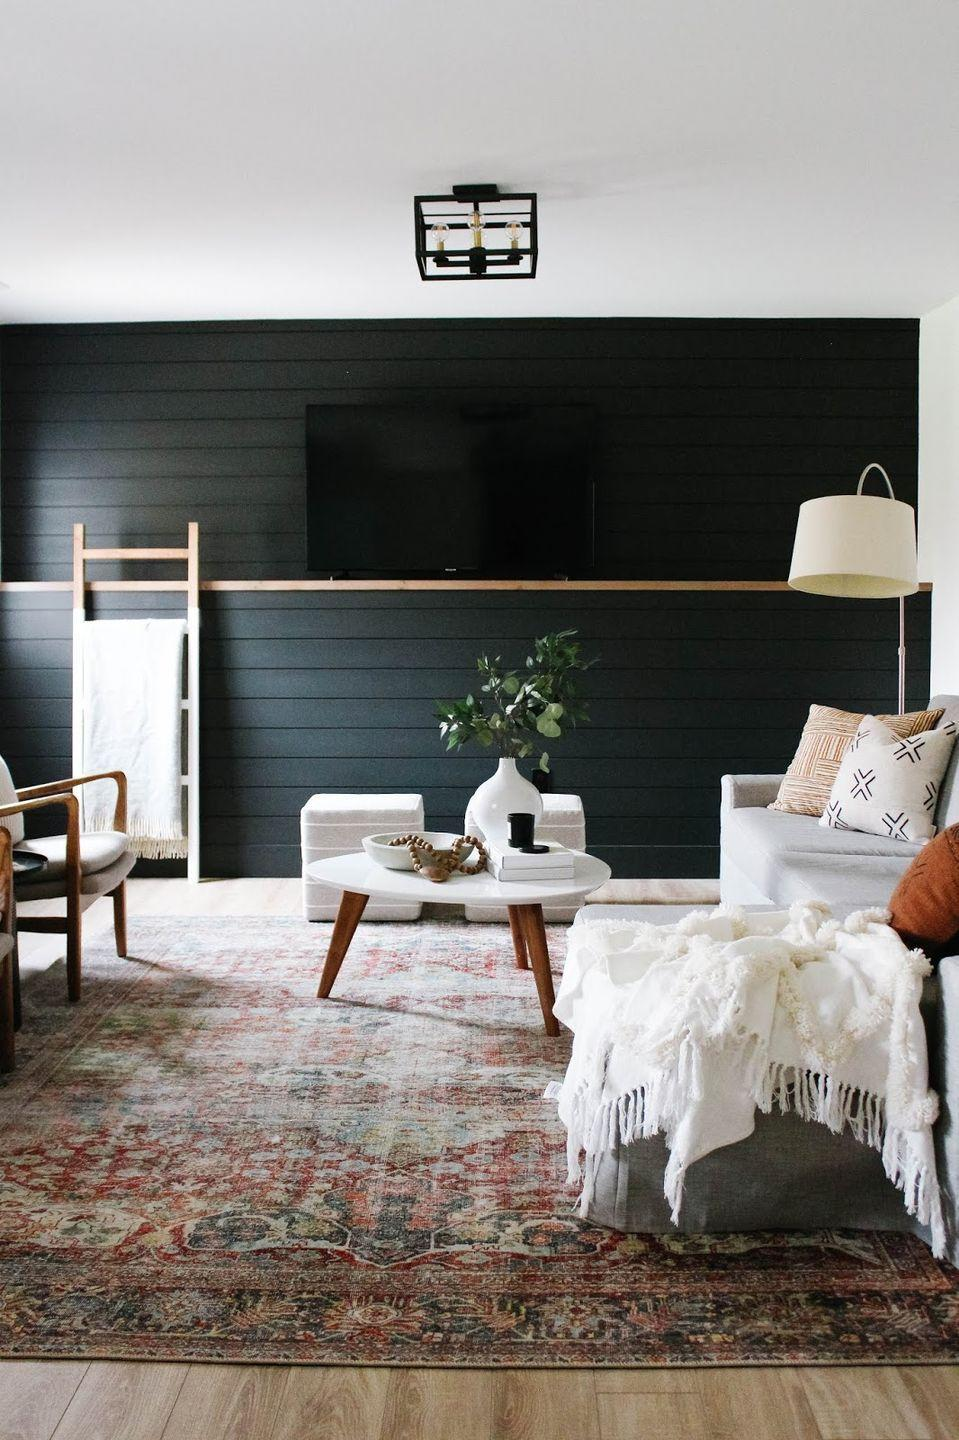 """<p>Step outside your comfort zone by featuring bold black shiplap walls in your basement. This look pairs well with neutrals and is the most genius way to hide your TV in plain sight!</p><p><strong>See more at <a href=""""https://www.houseofhiredesigns.com/2019/10/basement-reveal.html"""" rel=""""nofollow noopener"""" target=""""_blank"""" data-ylk=""""slk:House of Hire"""" class=""""link rapid-noclick-resp"""">House of Hire</a>.</strong></p><p><a class=""""link rapid-noclick-resp"""" href=""""https://go.redirectingat.com?id=74968X1596630&url=https%3A%2F%2Fwww.walmart.com%2Fip%2F15-W-x-48-H-x-3-1-2-D-Vintage-Farmhouse-3-Rung-Ladder-Barnwood-Decor-Collection-Reclaimed-Grey%2F256880278&sref=https%3A%2F%2Fwww.redbookmag.com%2Fhome%2Fg36061437%2Fbasement-ideas%2F"""" rel=""""nofollow noopener"""" target=""""_blank"""" data-ylk=""""slk:SHOP DECORATIVE LADDERS"""">SHOP DECORATIVE LADDERS</a></p>"""